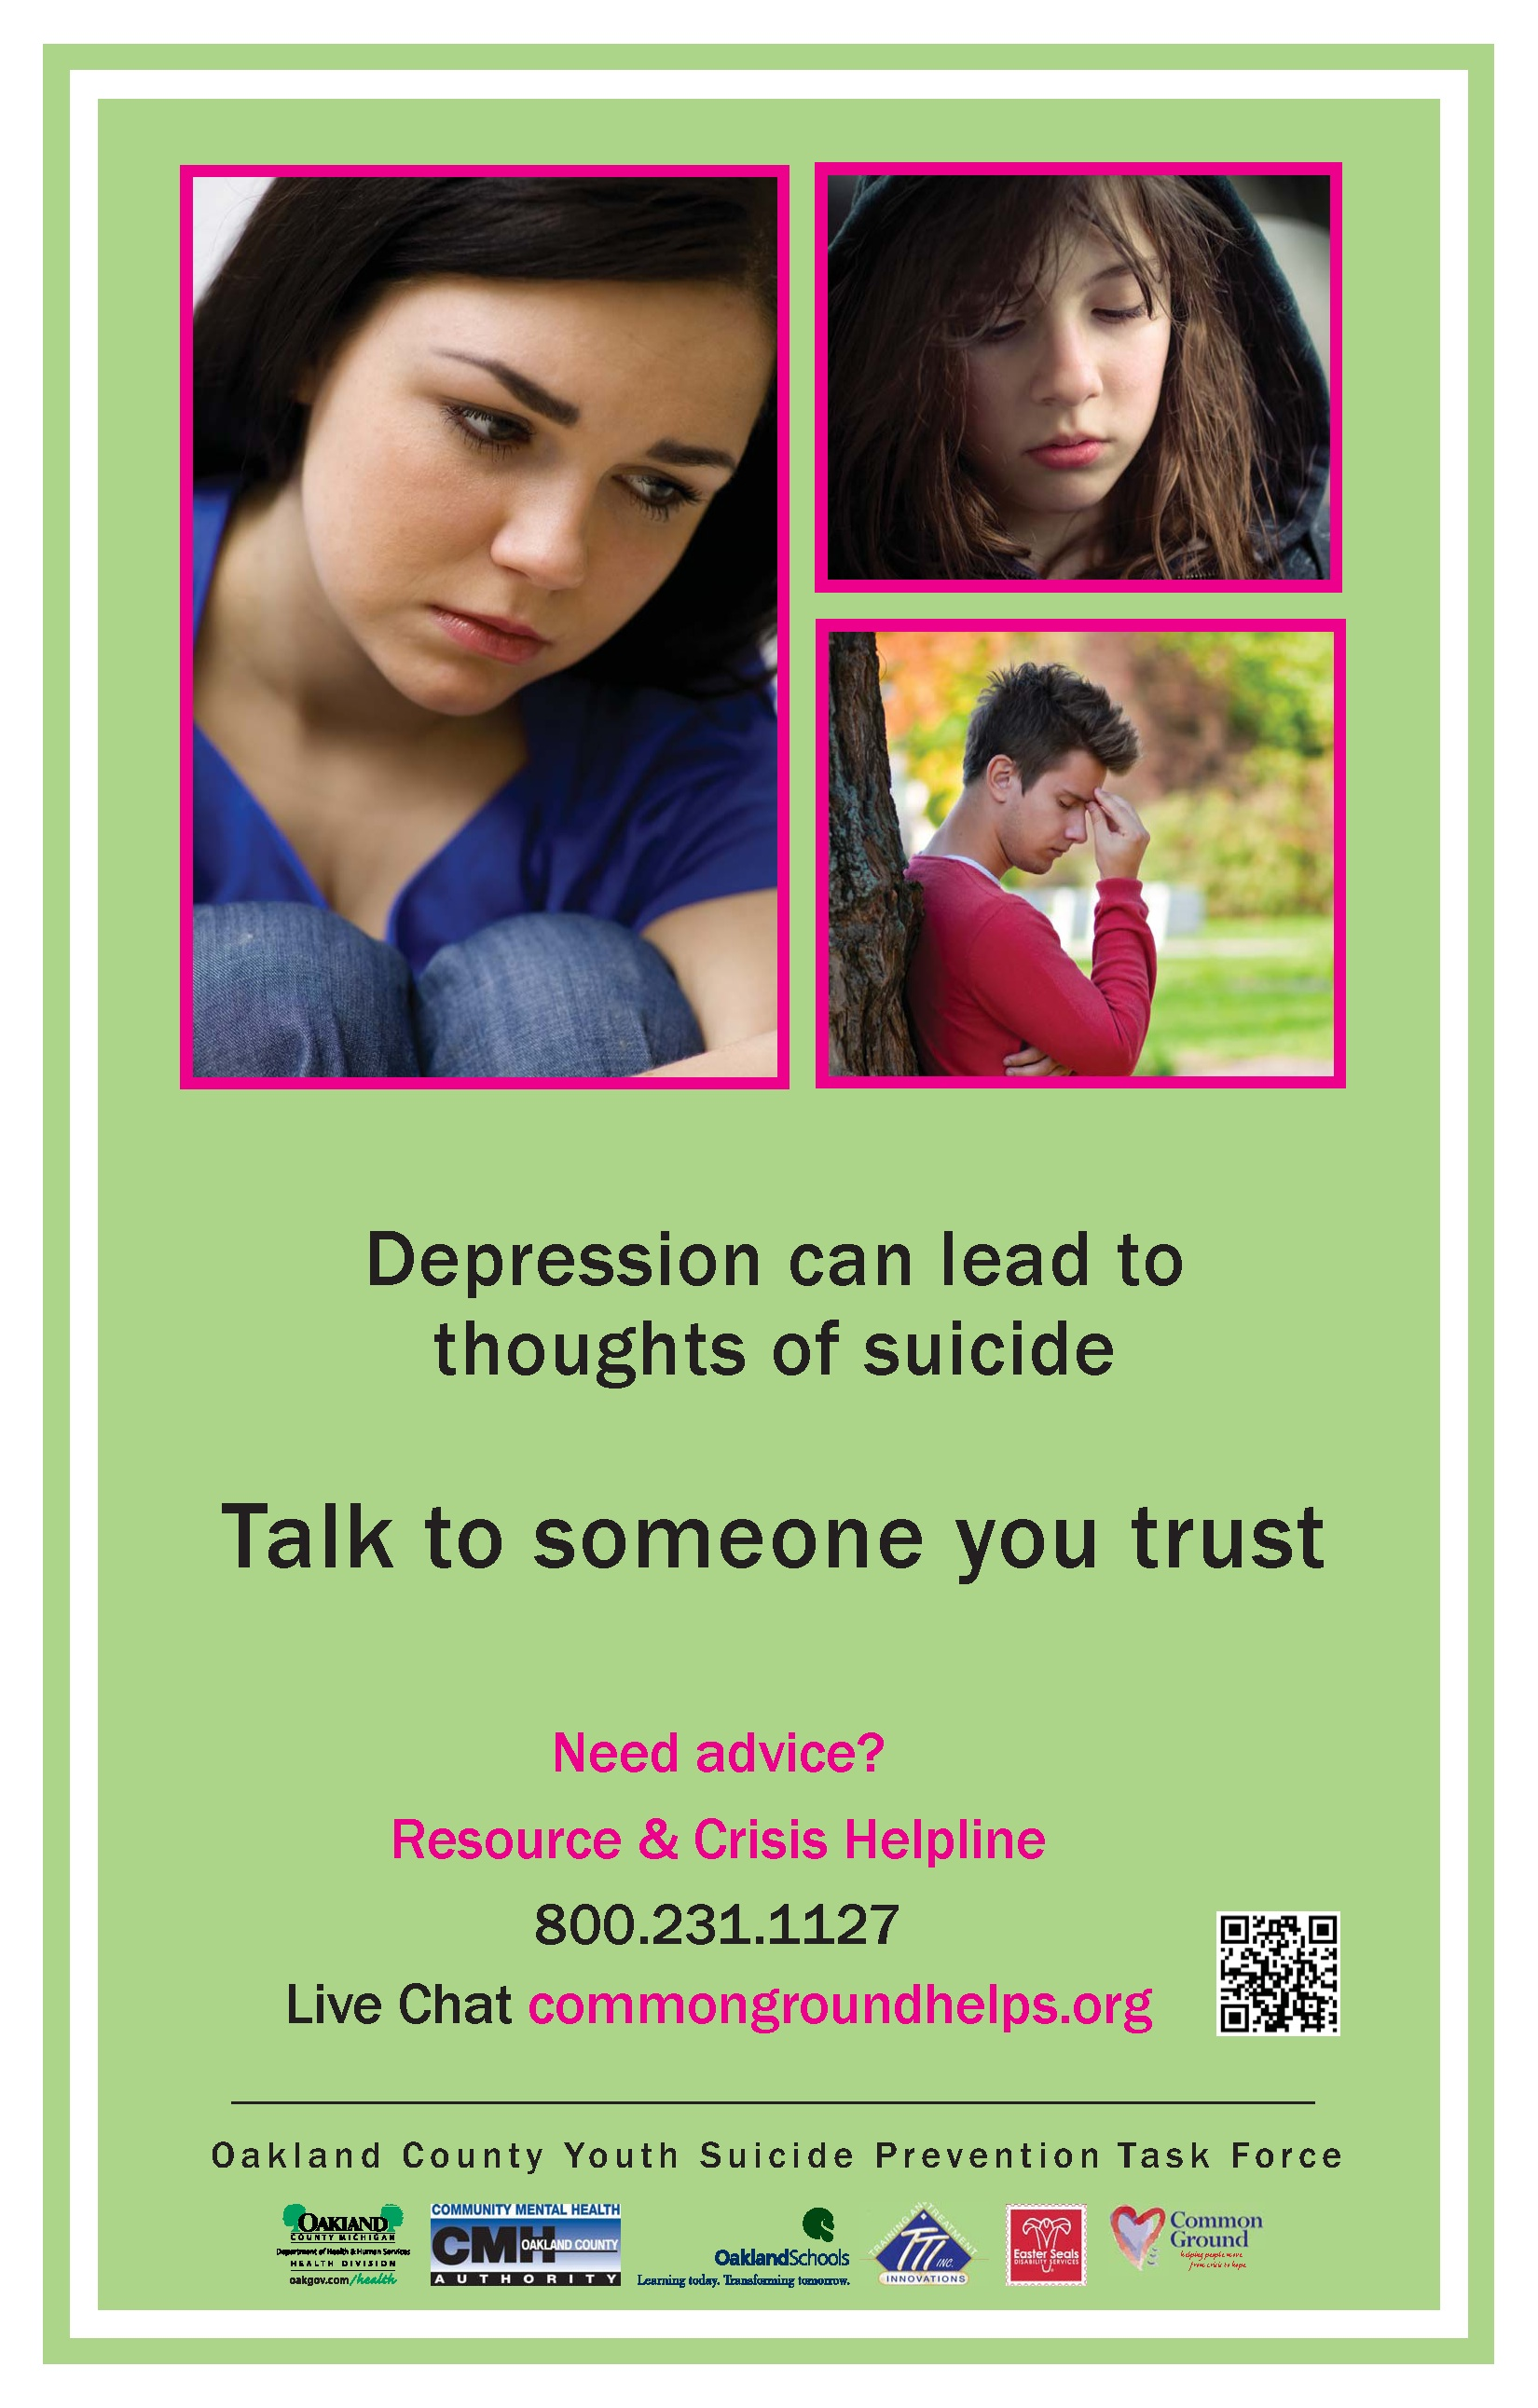 National Helpline Samhsa Substance Abuse And Mental Health >> Oakland County takes action to prevent suicide